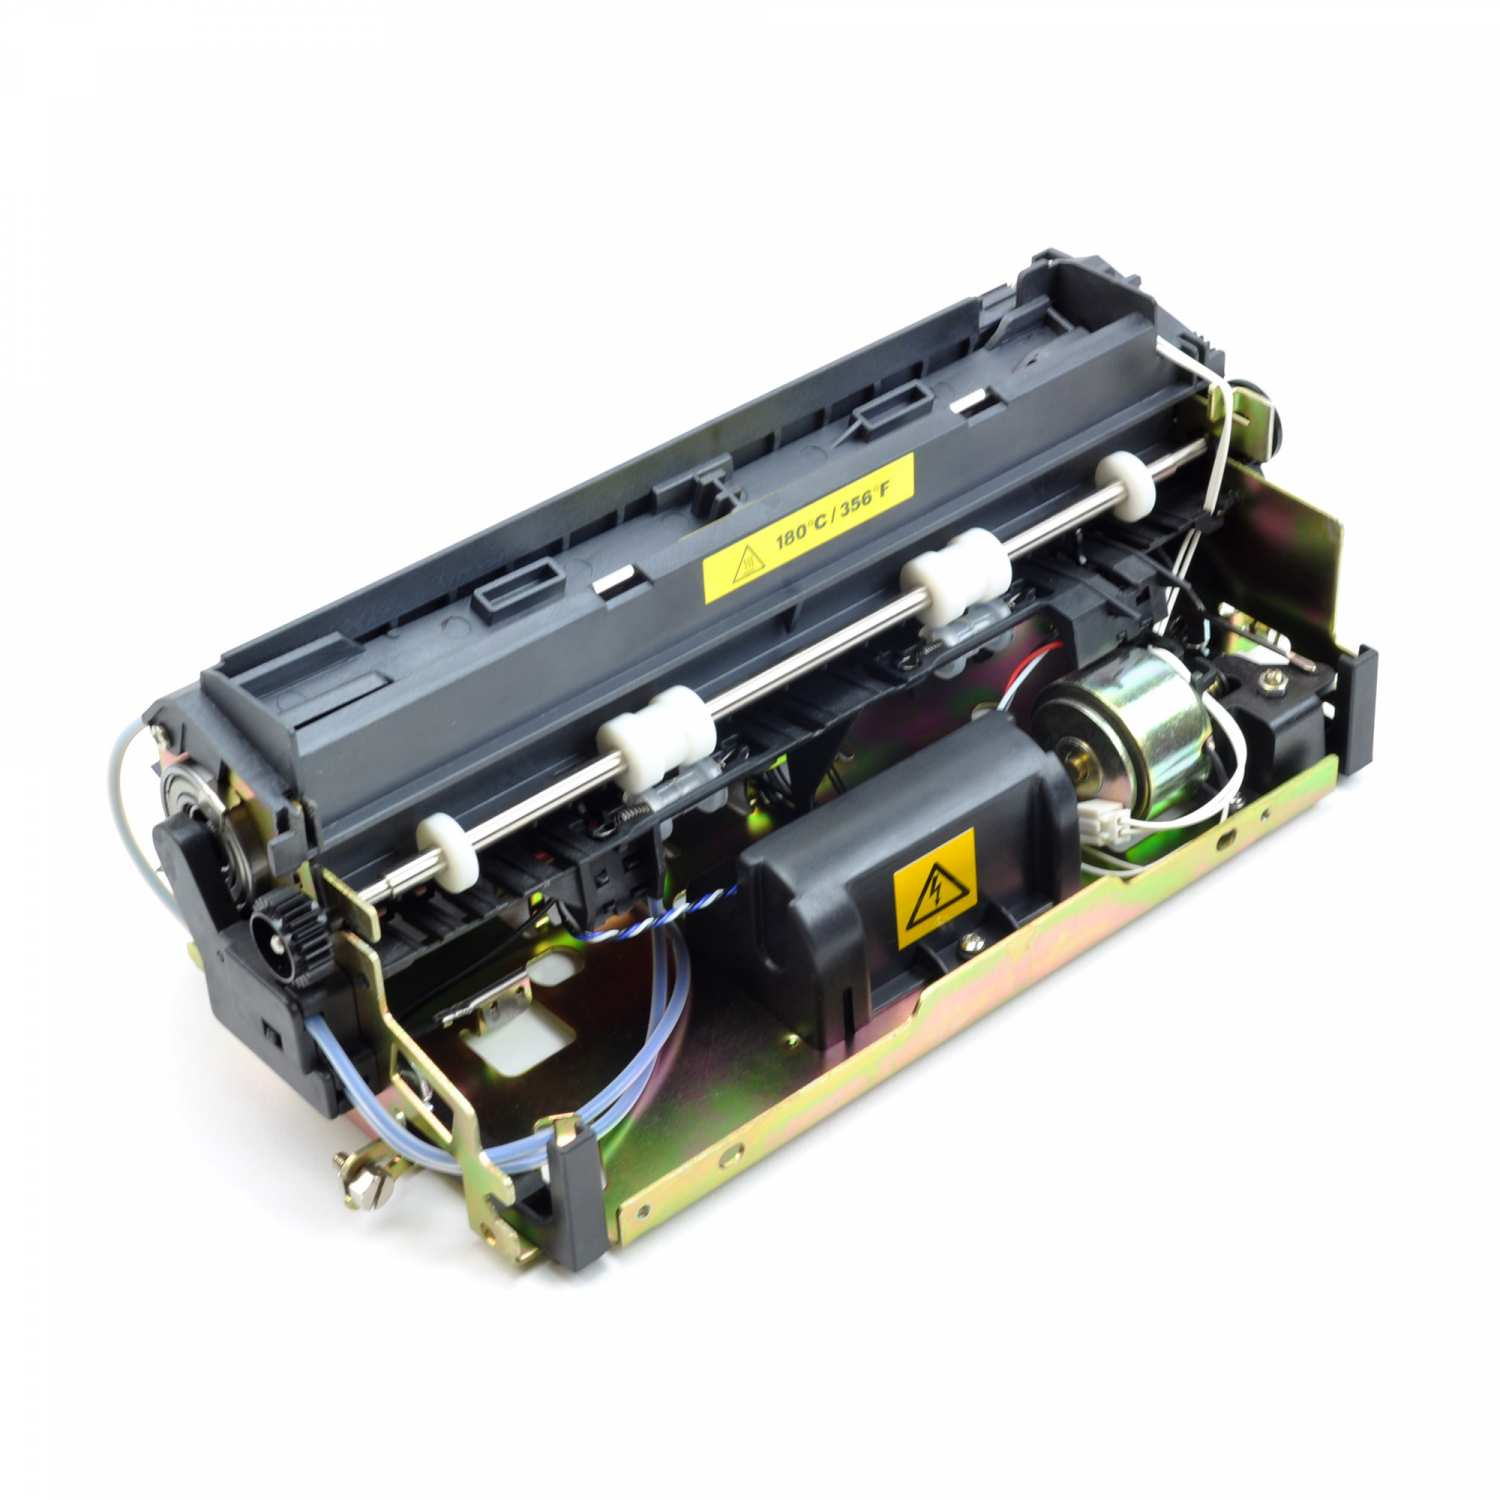 99A2404 Fuser Assembly (220V) - T622 Purchase for Lexmark T62x